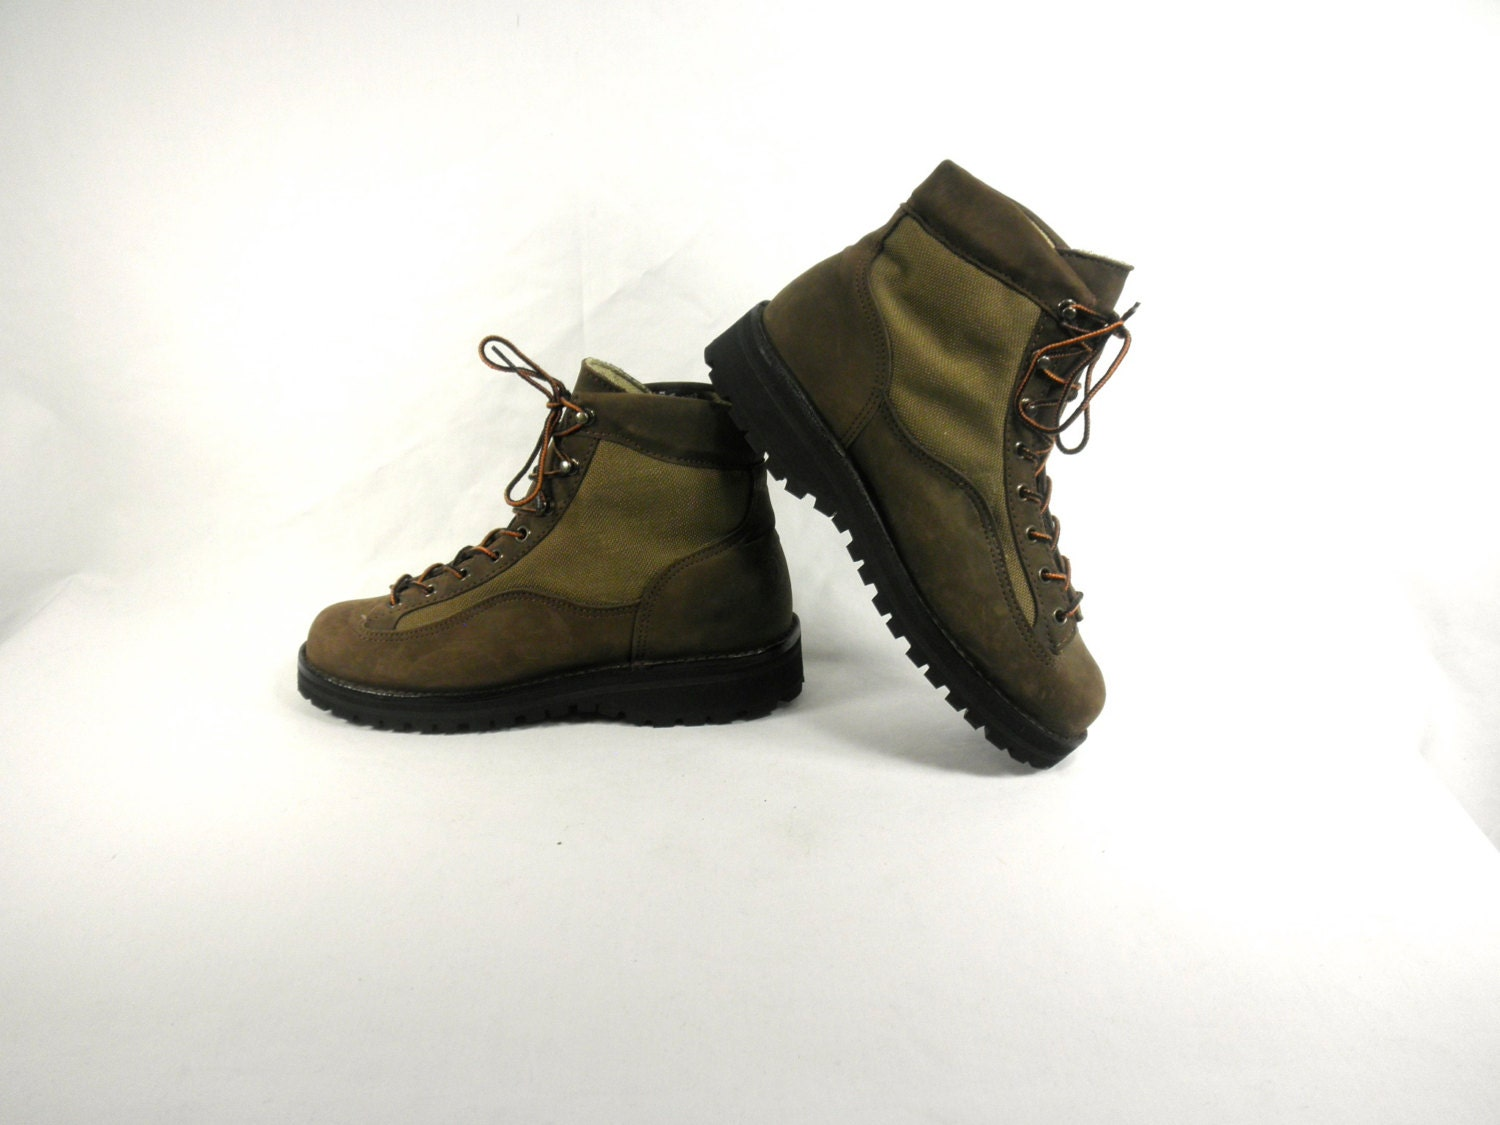 danner mountain light ii nubuck hiking boots with vibram soles. Black Bedroom Furniture Sets. Home Design Ideas